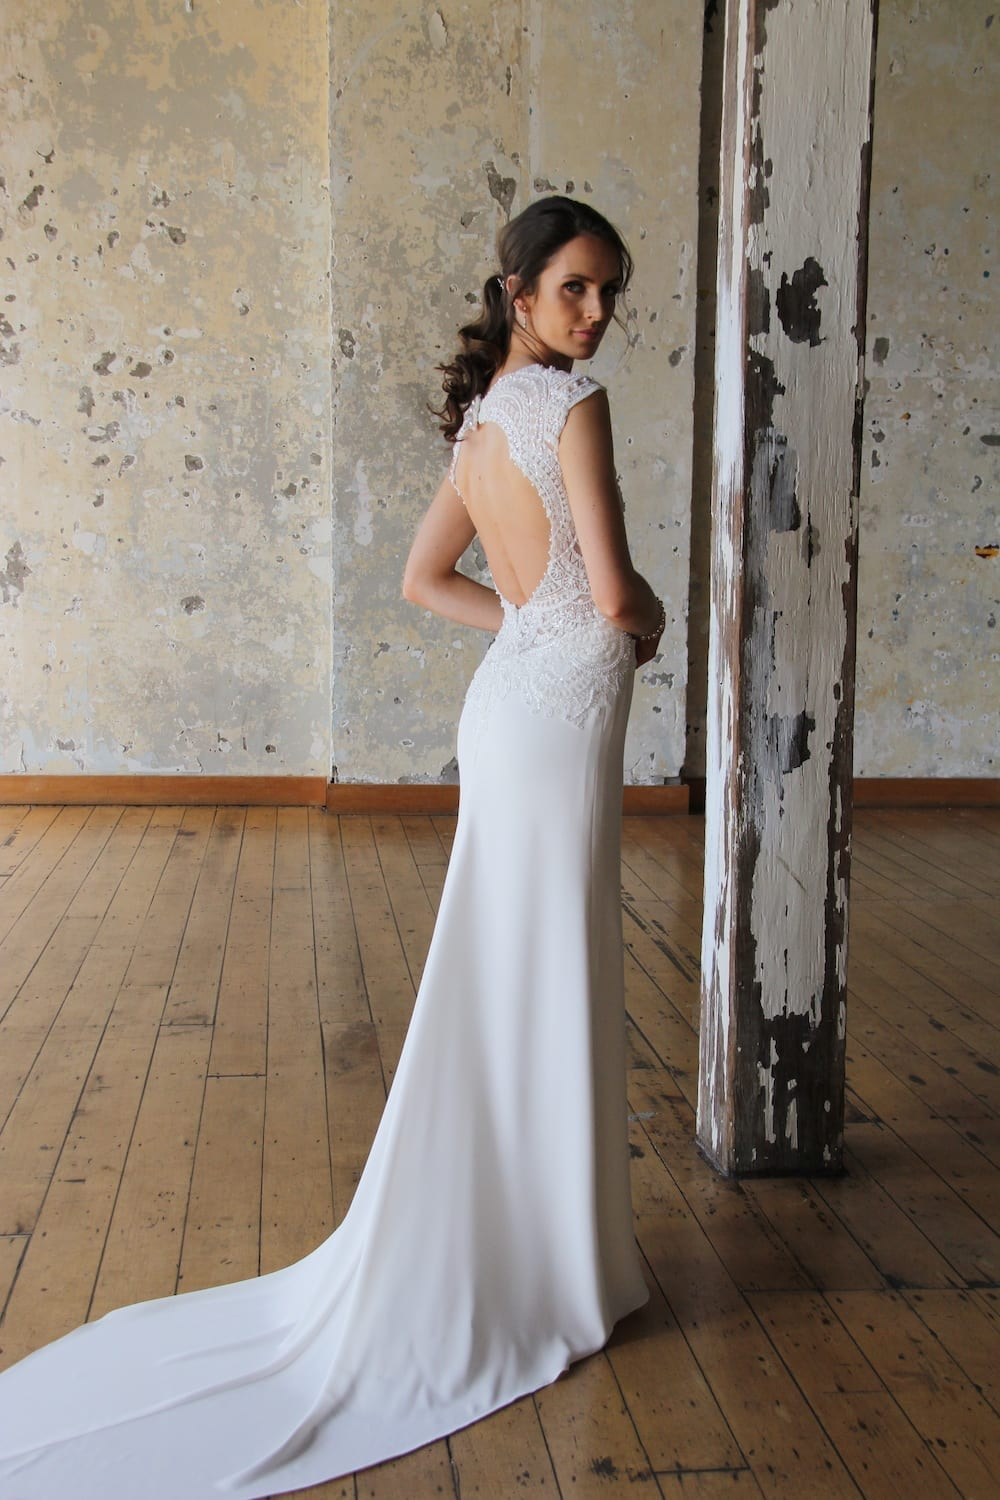 Female model wearing Vinka Design Modern Muse Wedding Dress. In chic warehouse the back detail of a gown with a a richly beaded lace bodice, deep v-neckline, wide shoulders and a slim crepe skirt with a train.